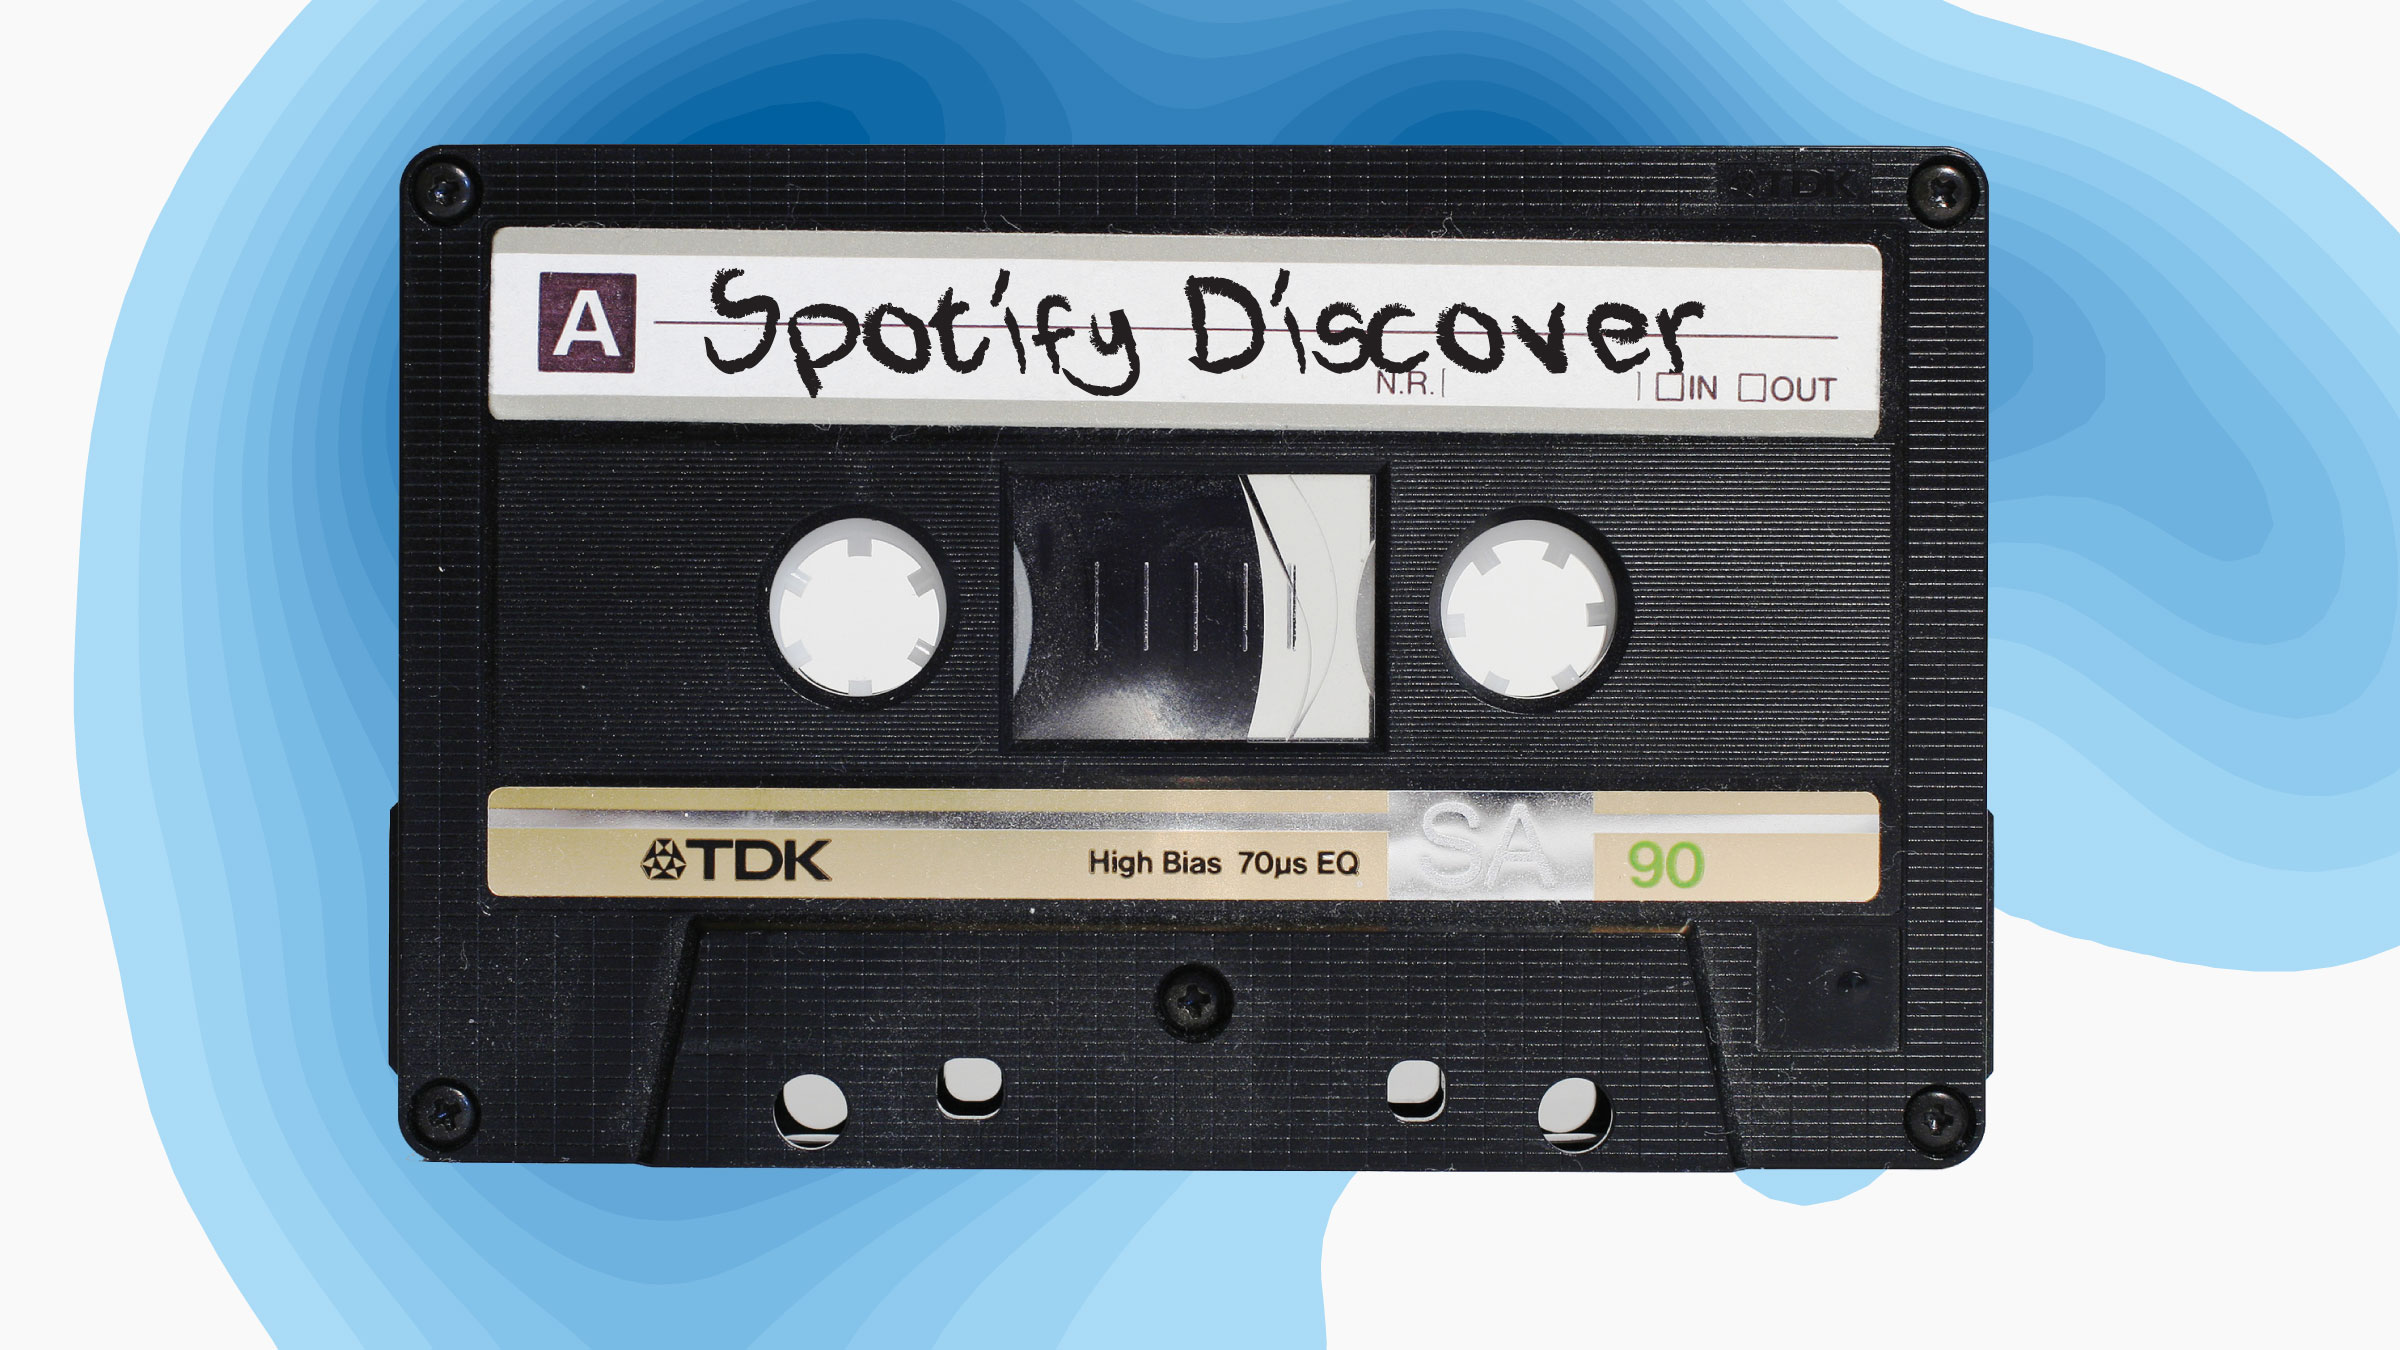 The magic that makes Spotify's Discover Weekly playlists so damn